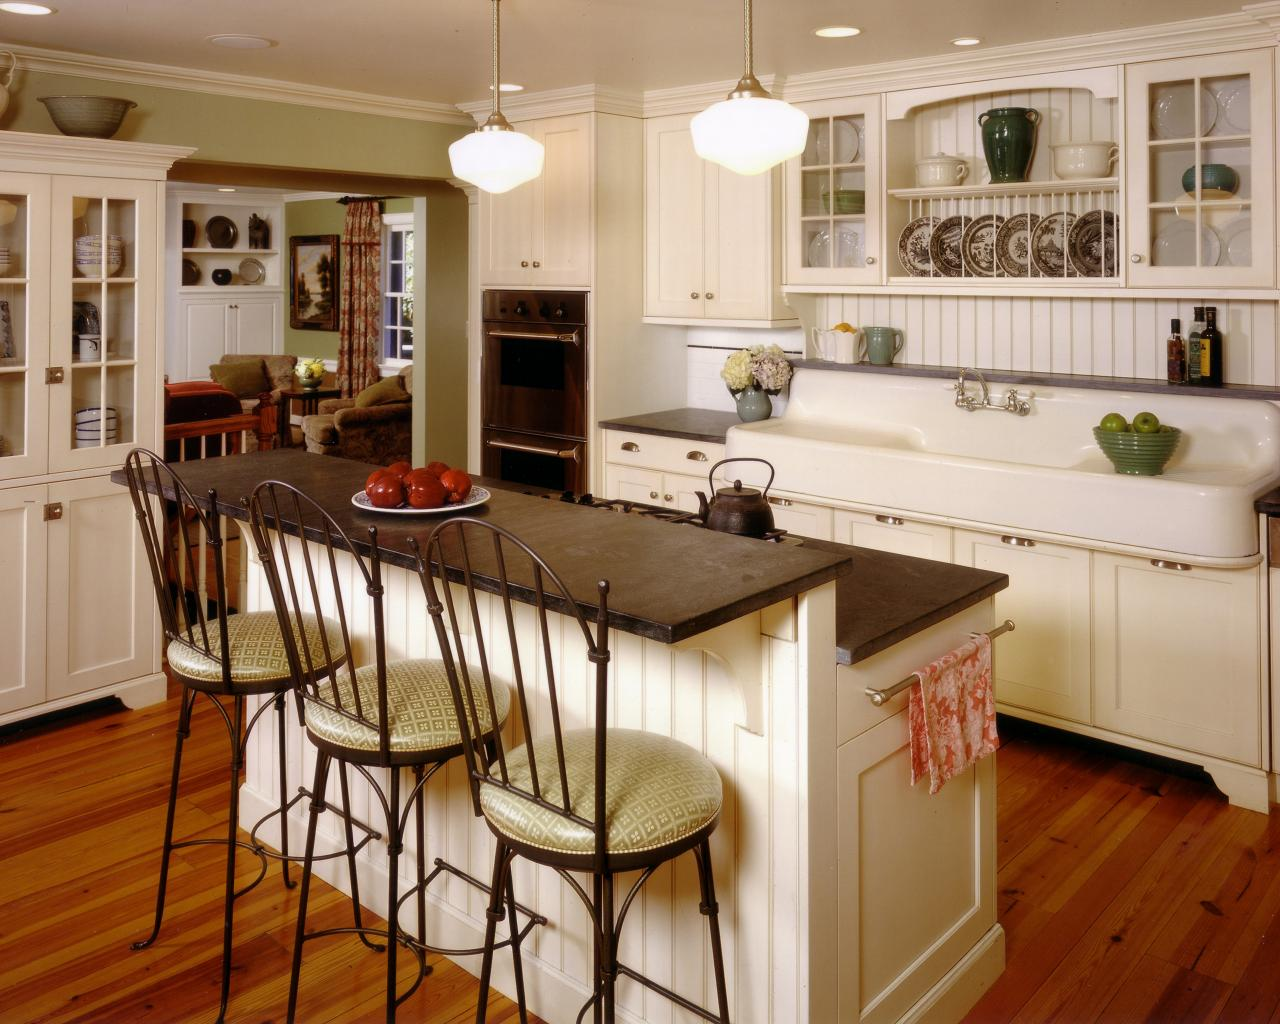 Incroyable Country Kitchen Design